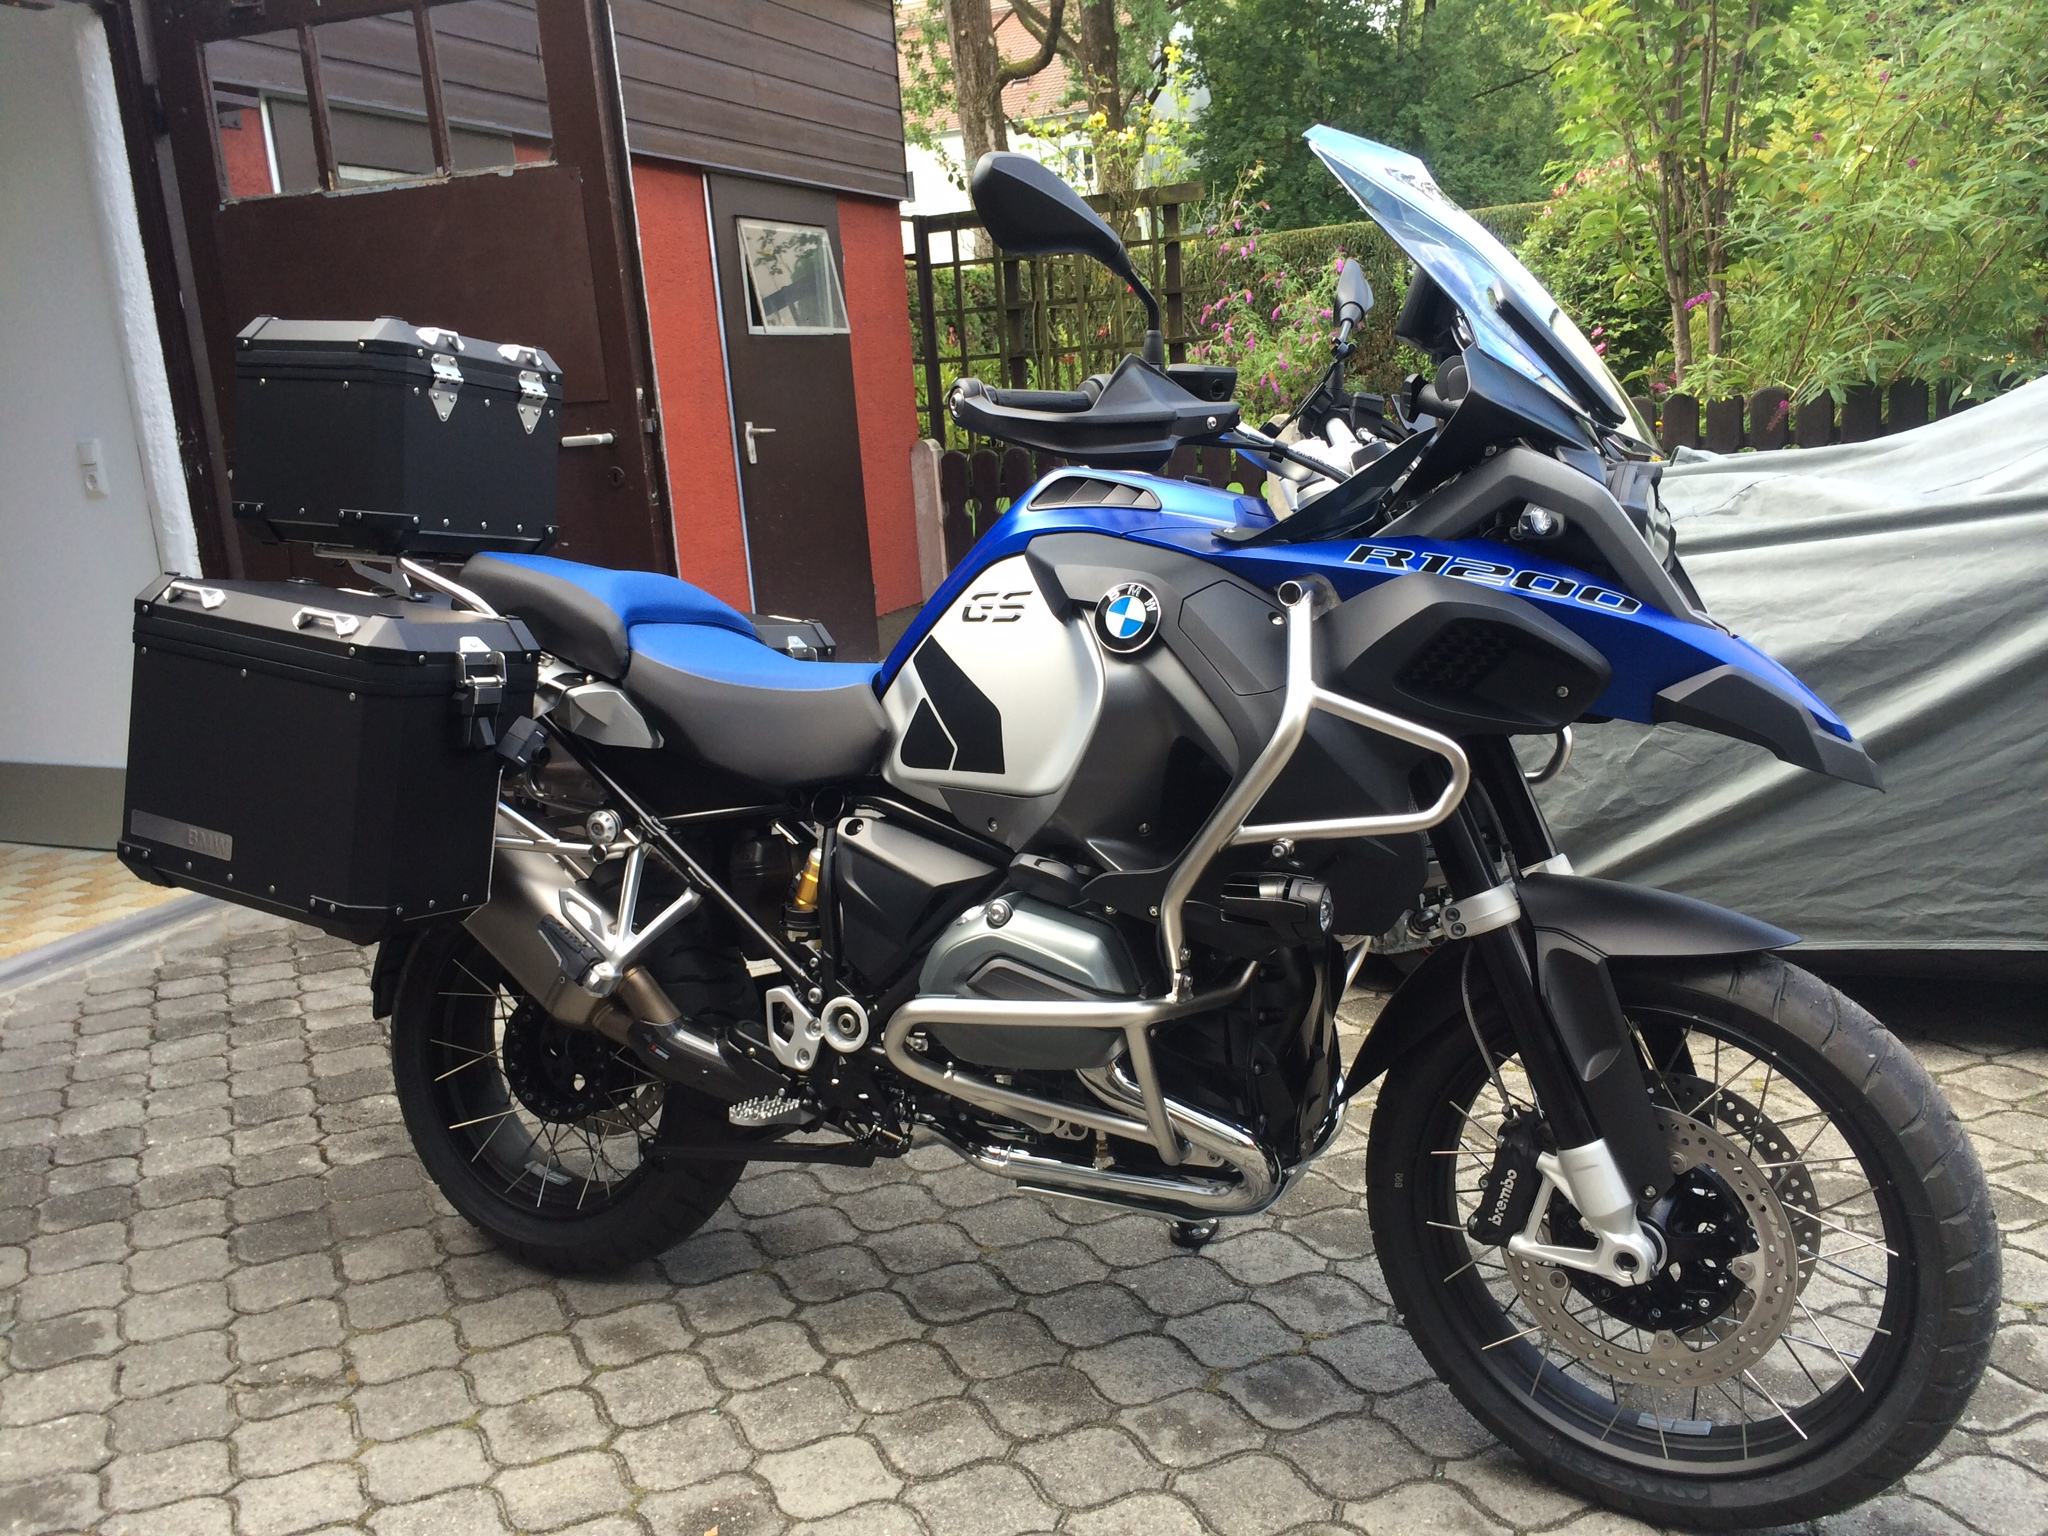 biete r 1200 gs adventure lc r1200 gs lc bmw koffer. Black Bedroom Furniture Sets. Home Design Ideas